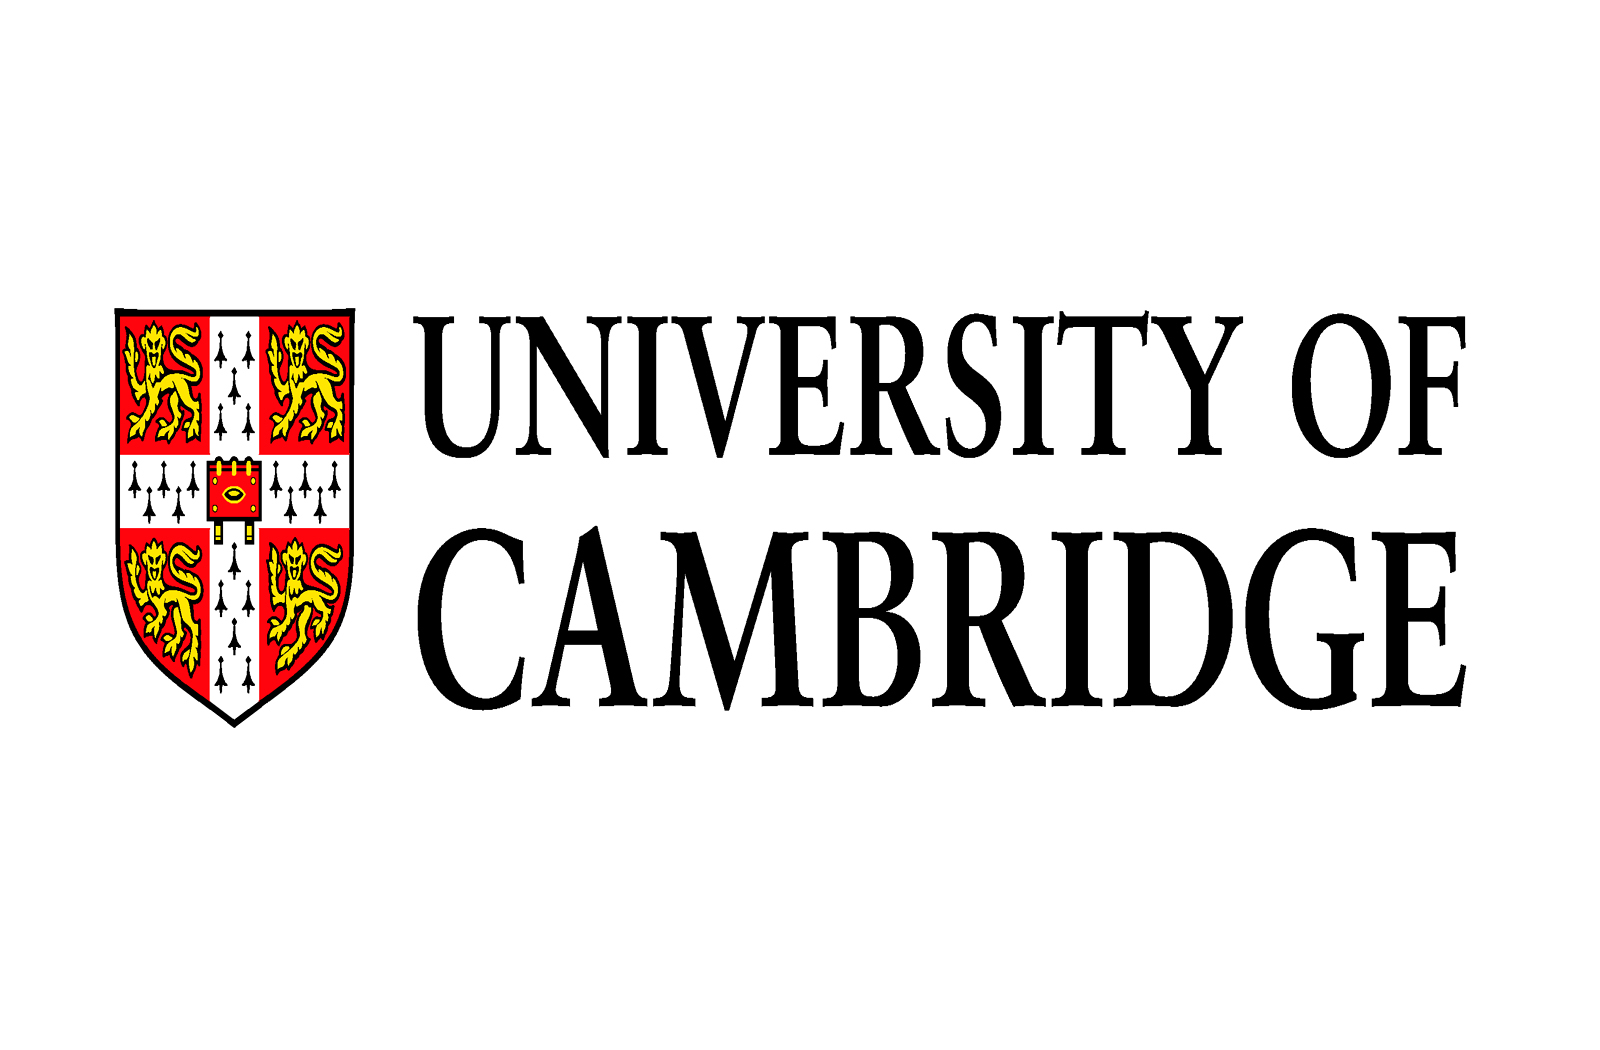 http://4.bp.blogspot.com/-nlwmpSf9Z1M/Tyfin7hP3rI/AAAAAAAAAdI/UpgFdtMcSfU/s1600/University_of_Cambridge_HD_Logo-Vvallpaper.Net.jpg